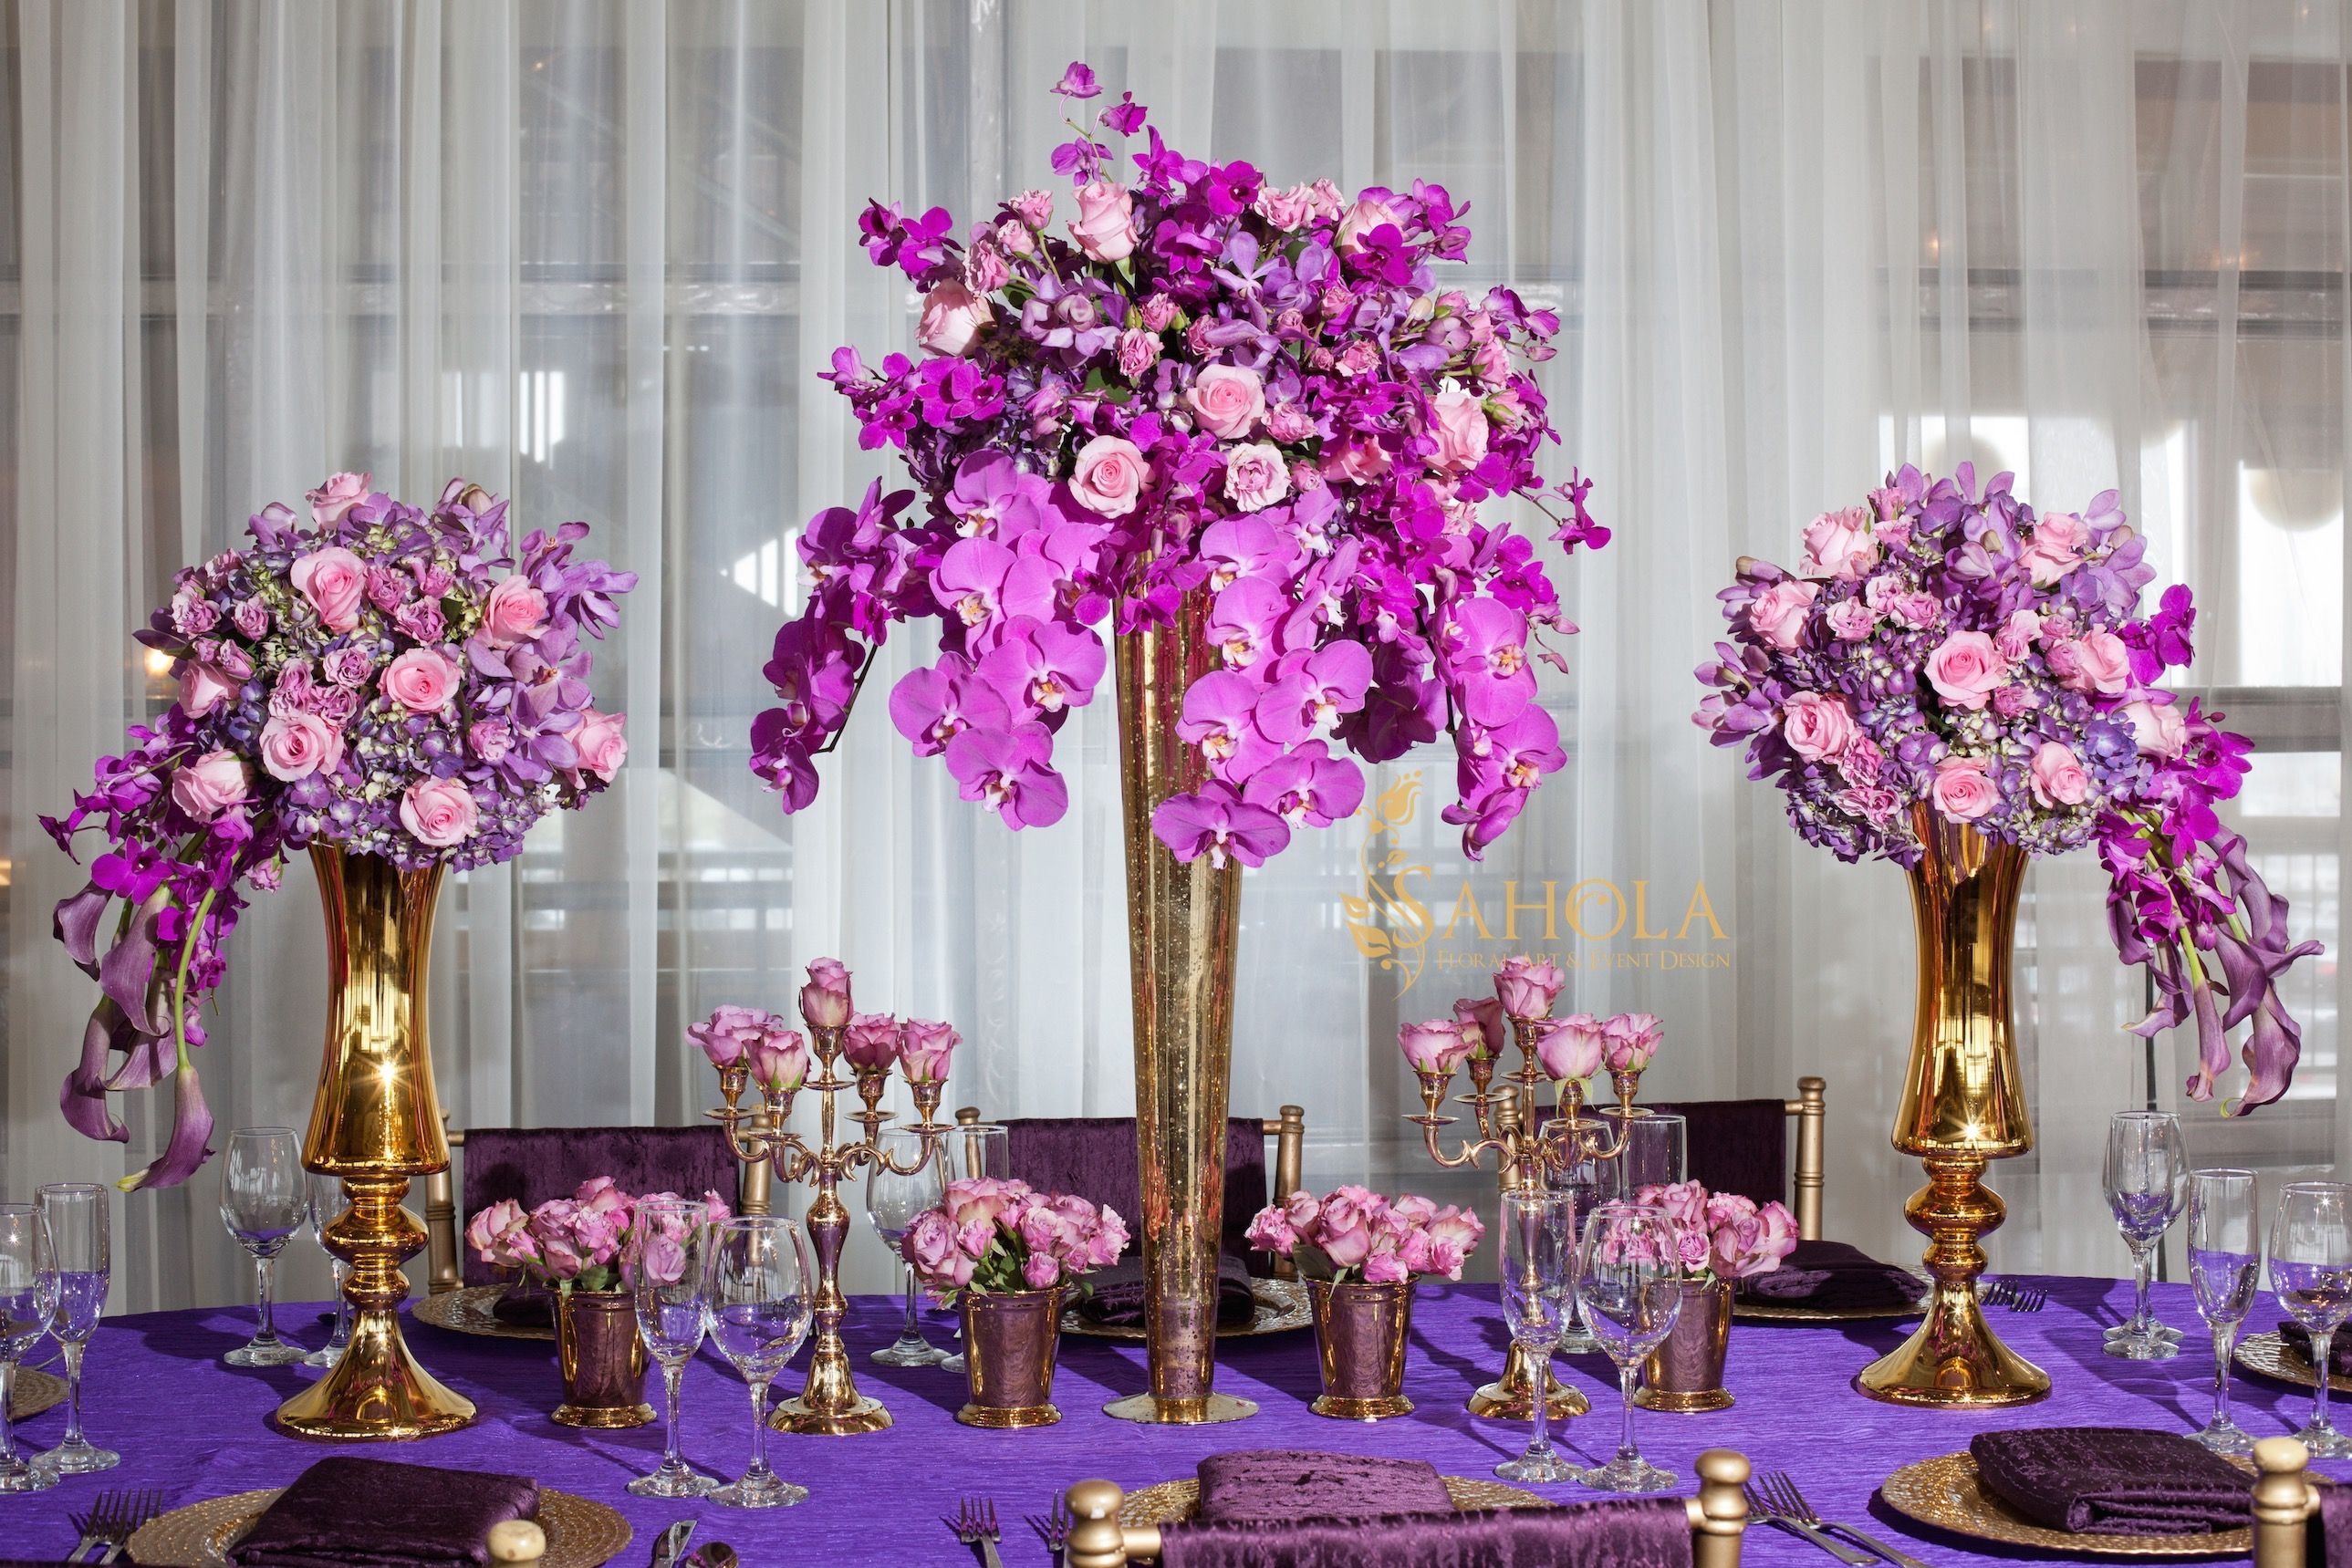 Luxury table scape in purple Event centerpiece wedding flowers purple orchids by SaholaNY